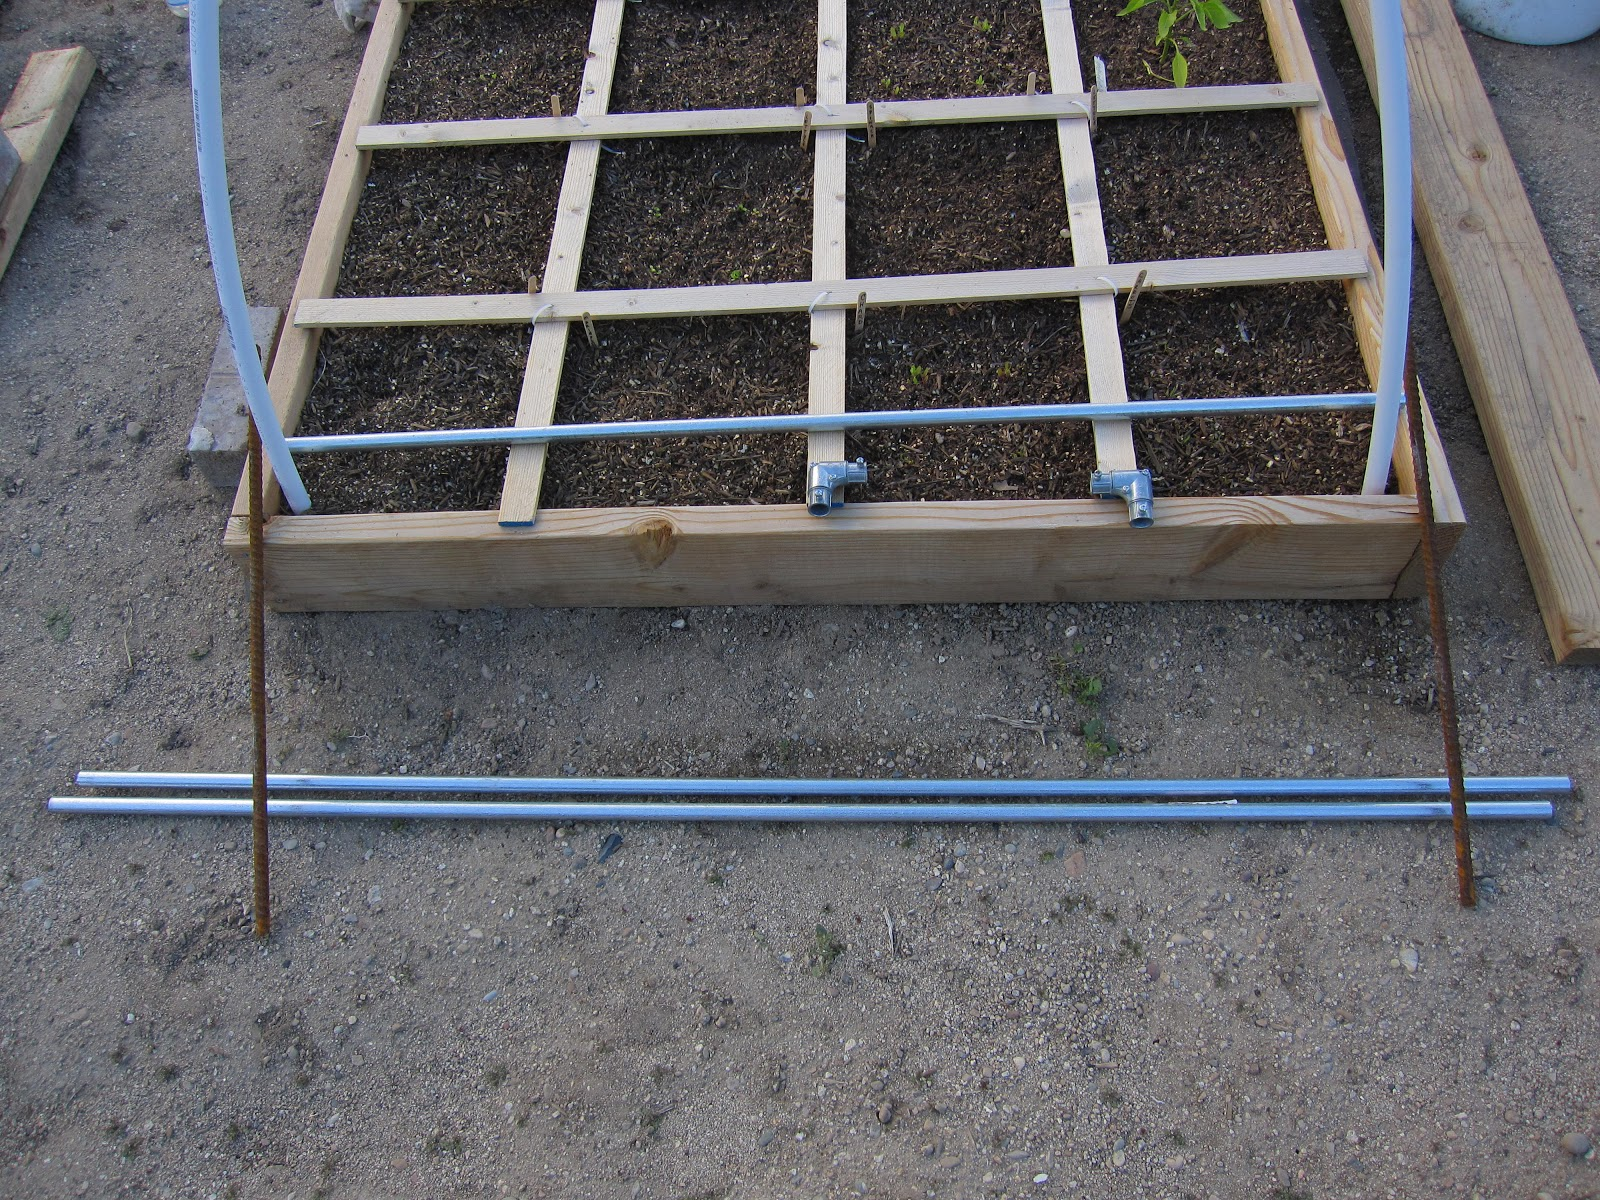 in my league building a square foot garden trellis rebar at each corner 2 five foot lengths of pipe shown on the ground connectors and four foot length of pipe resting on the box